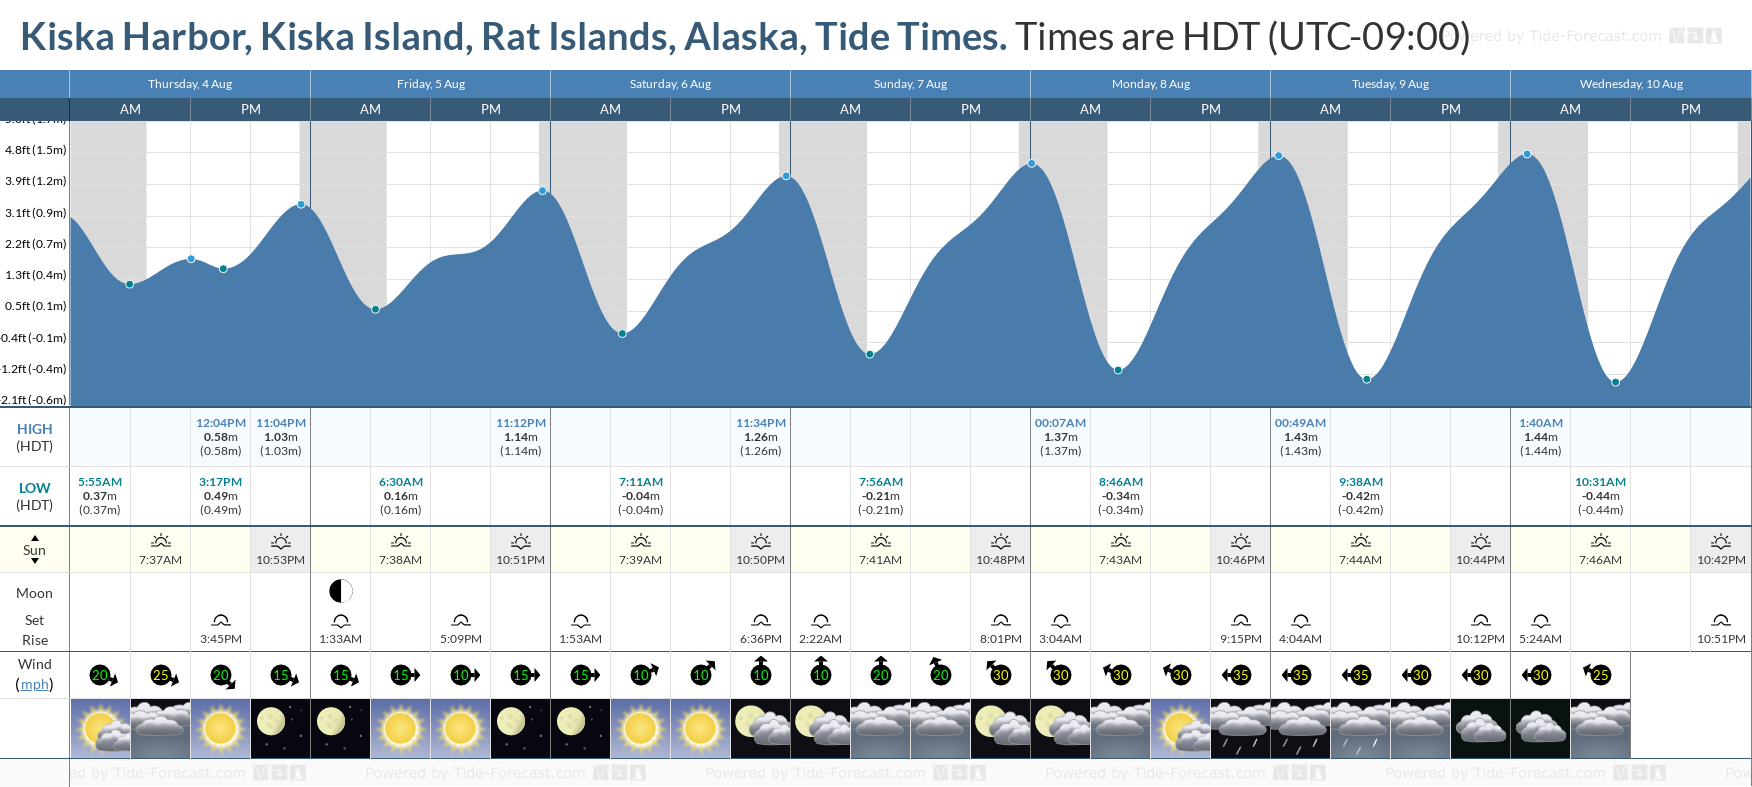 Kiska Harbor, Kiska Island, Rat Islands, Alaska Tide Chart including high and low tide tide times for the next 7 days